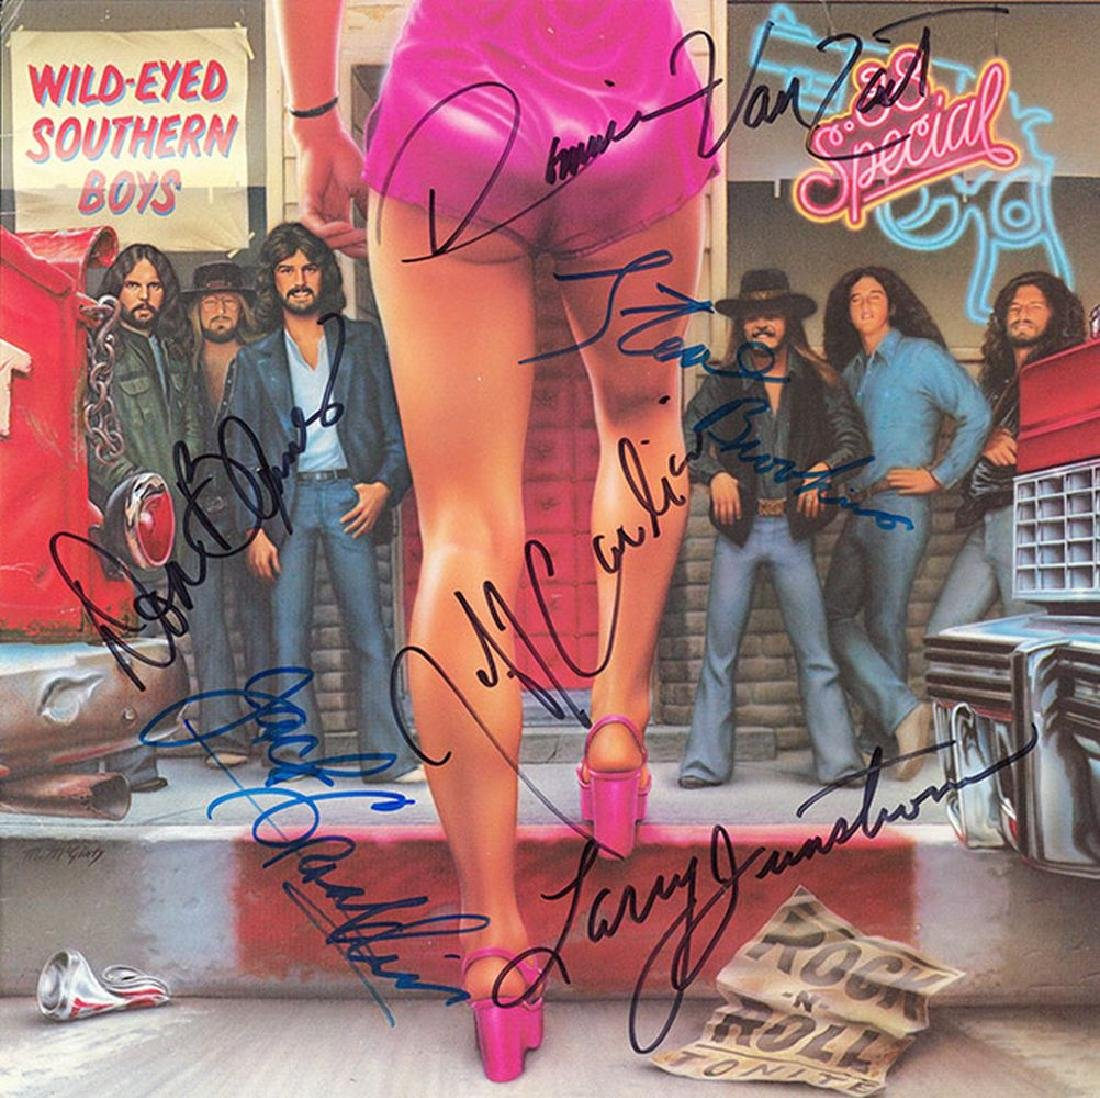 38 Special Band Signed Wild-Eyed Southern Boys Album